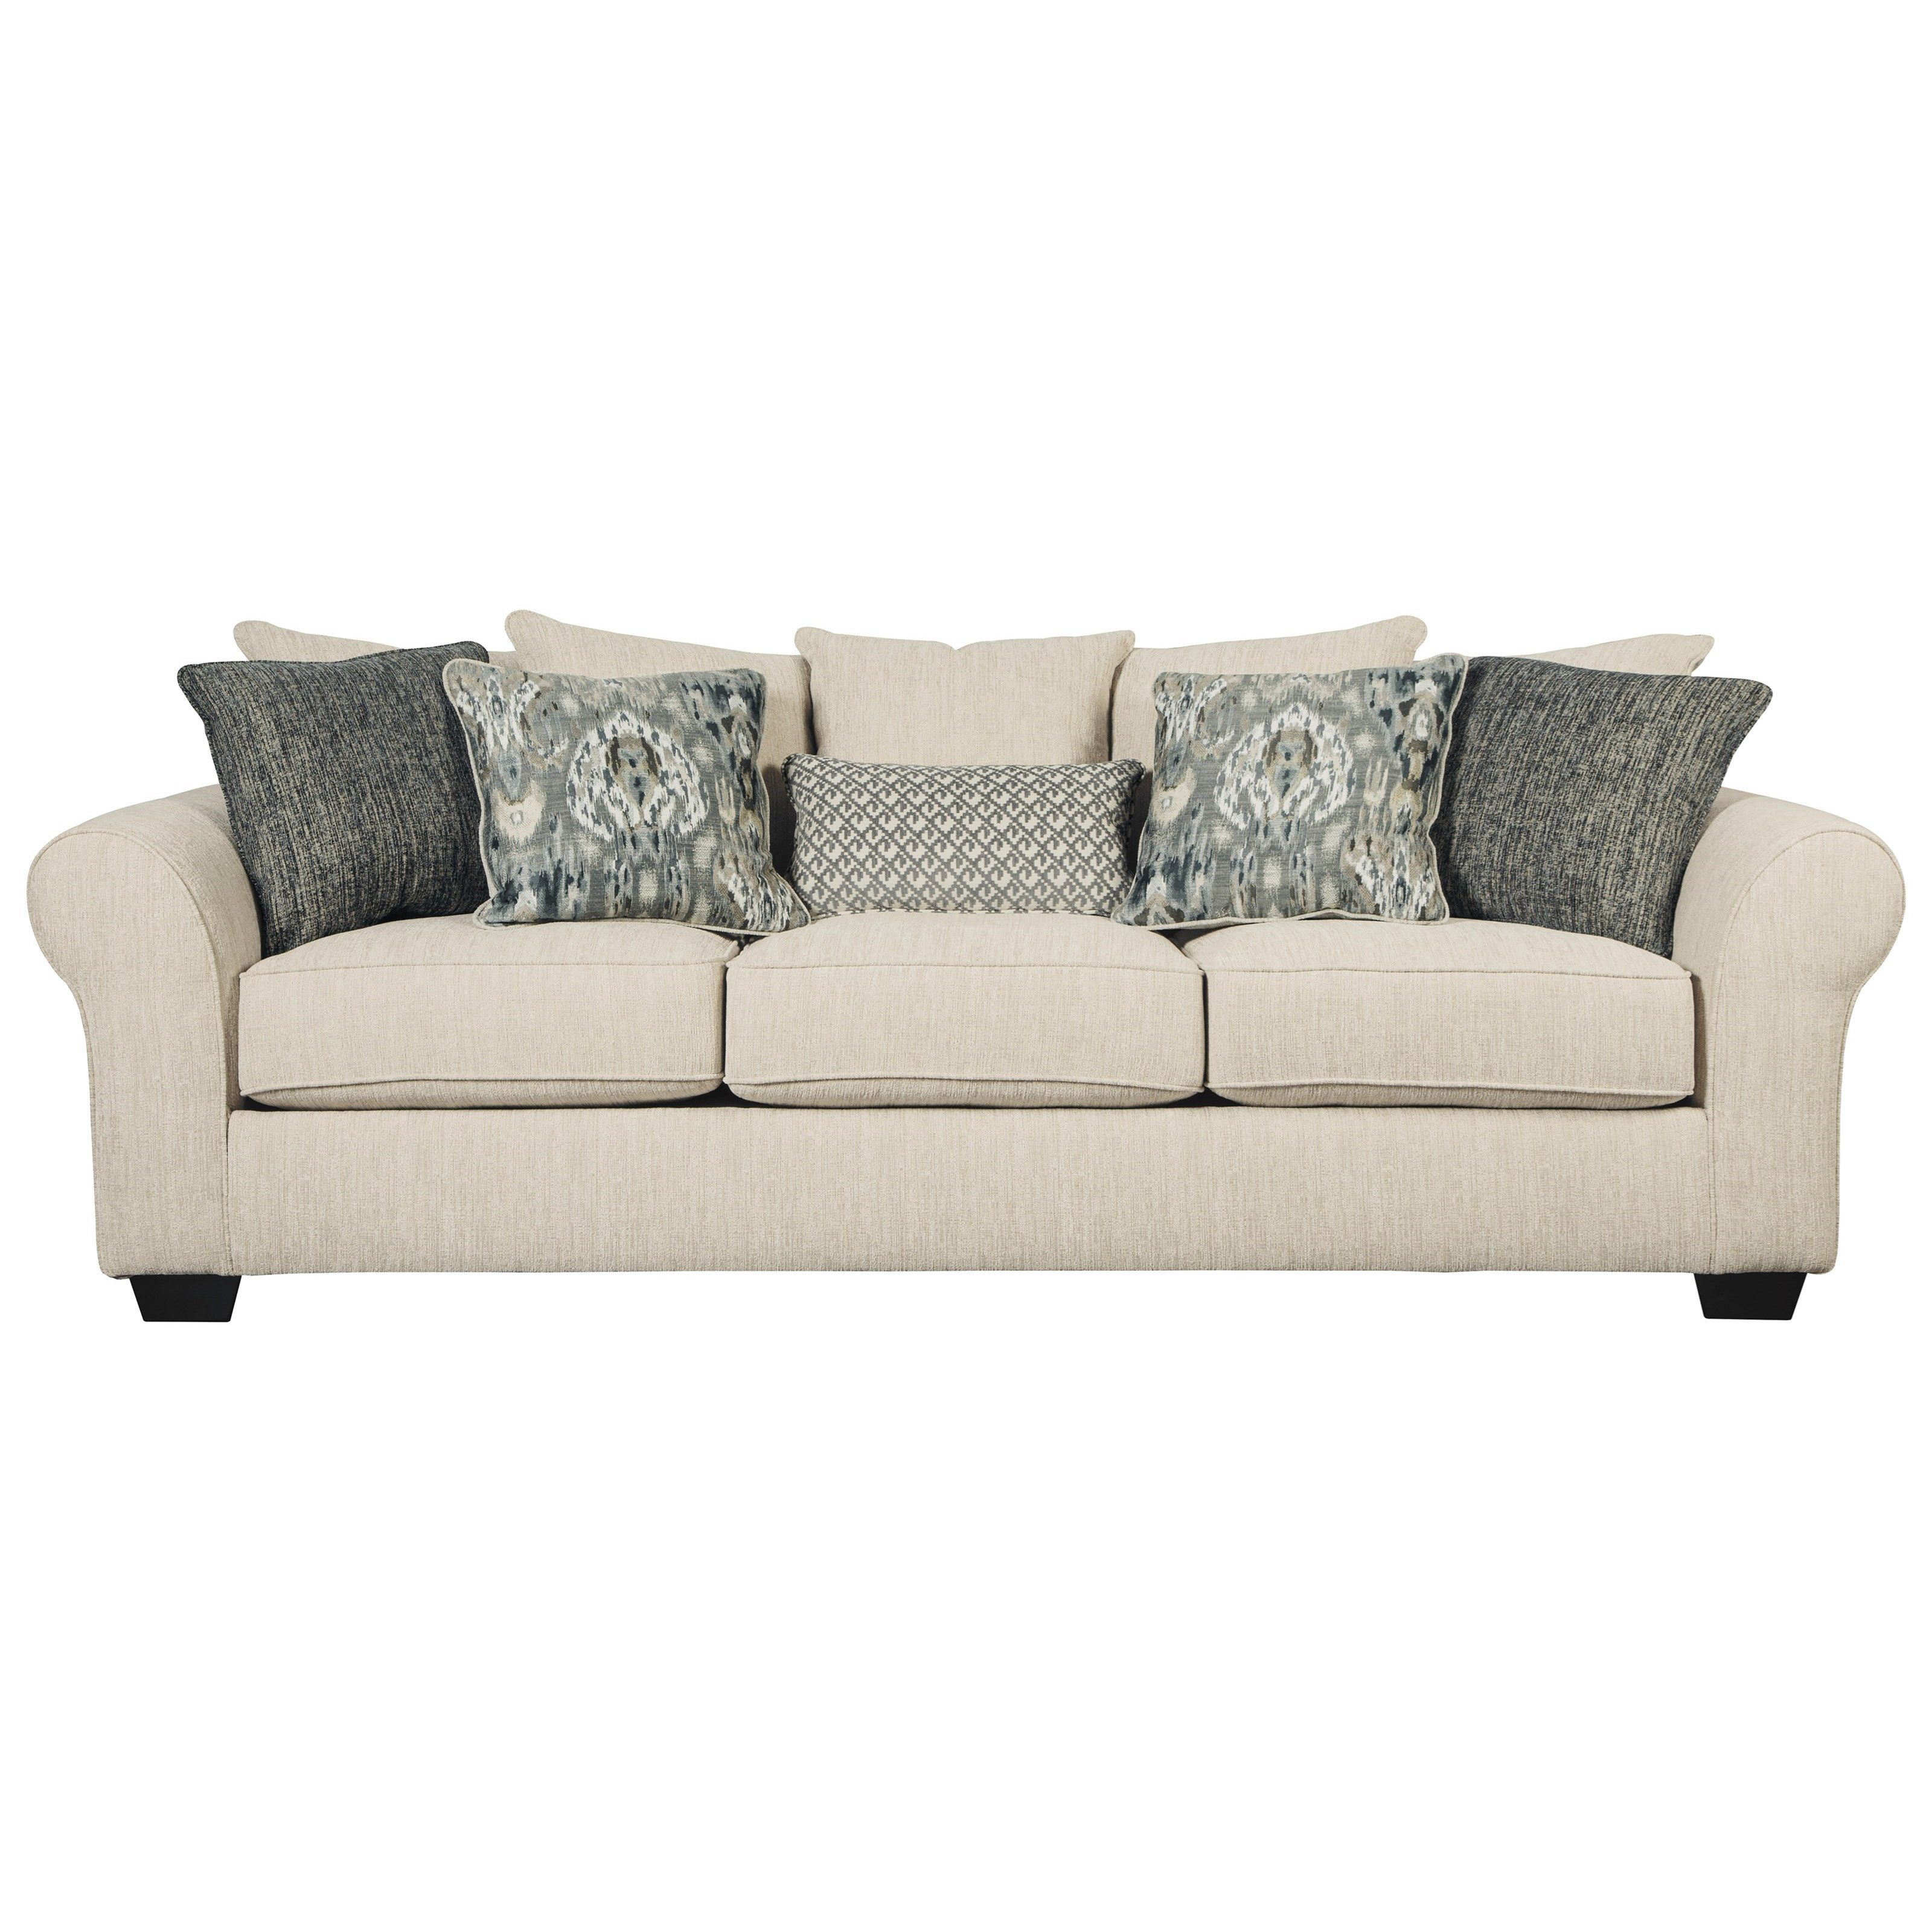 back w pillows contemporary reviews furniture by tufted oversized sofa and cupboard janley accent benchcraft with loveseat